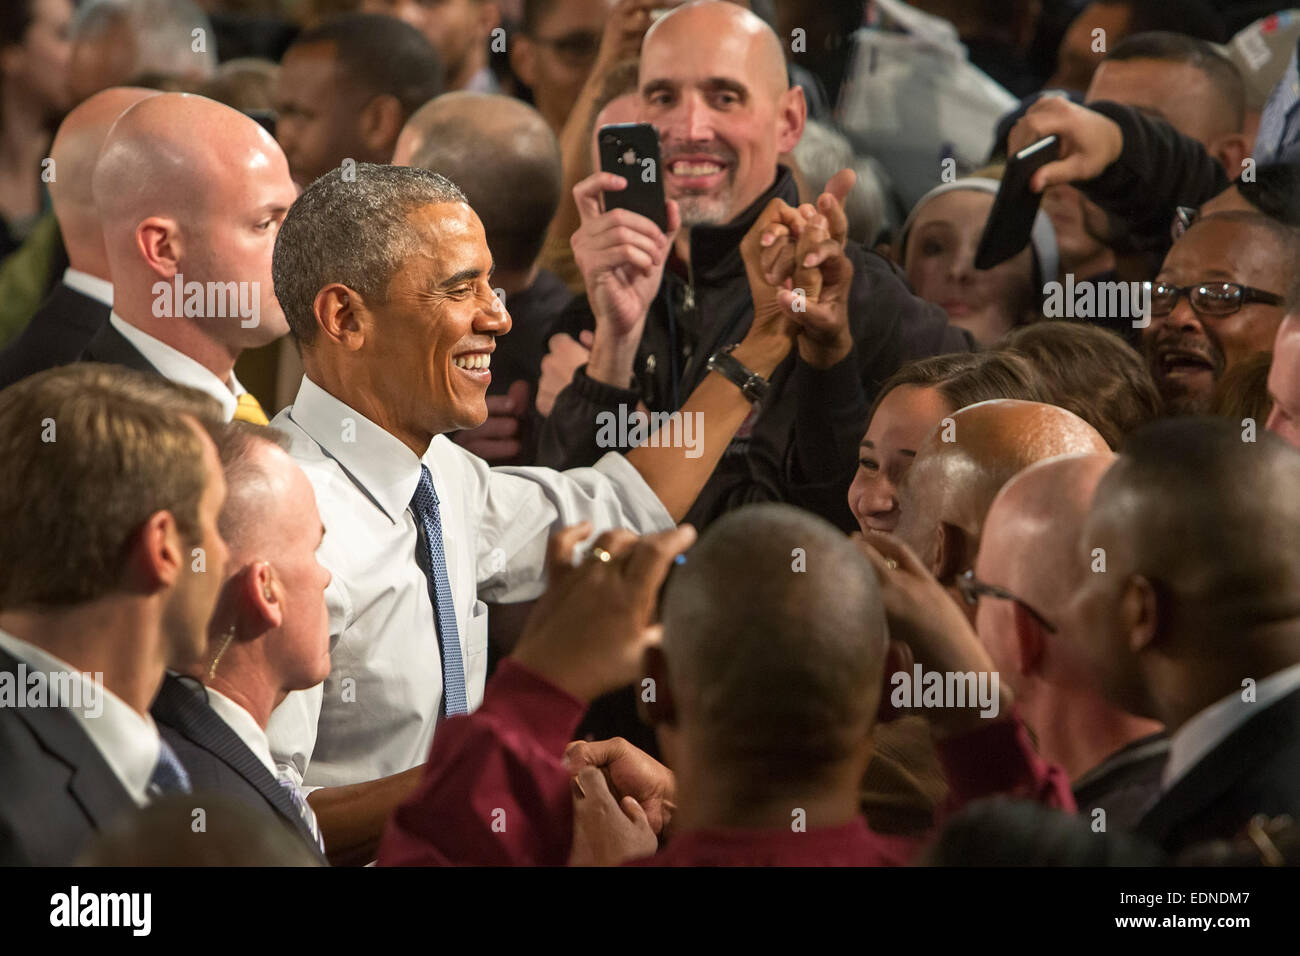 Wayne, Michigan, USA. President Barack Obama shakes hands following a speech at Ford's Michigan Assembly Plant. - Stock Image